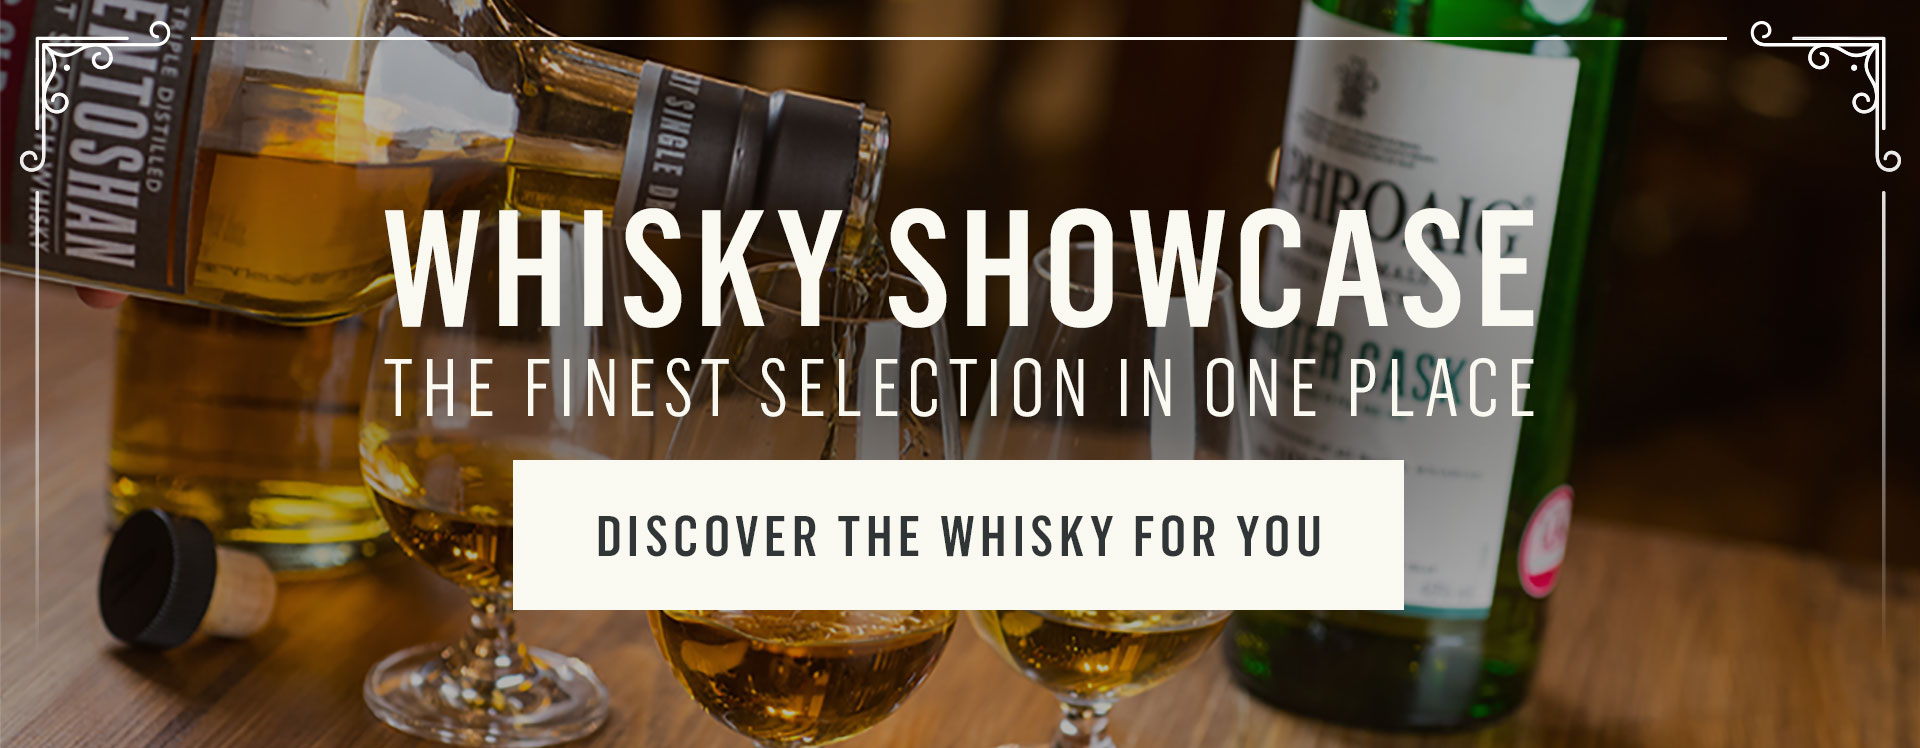 Whisky Showcase at The Three Greyhounds in London